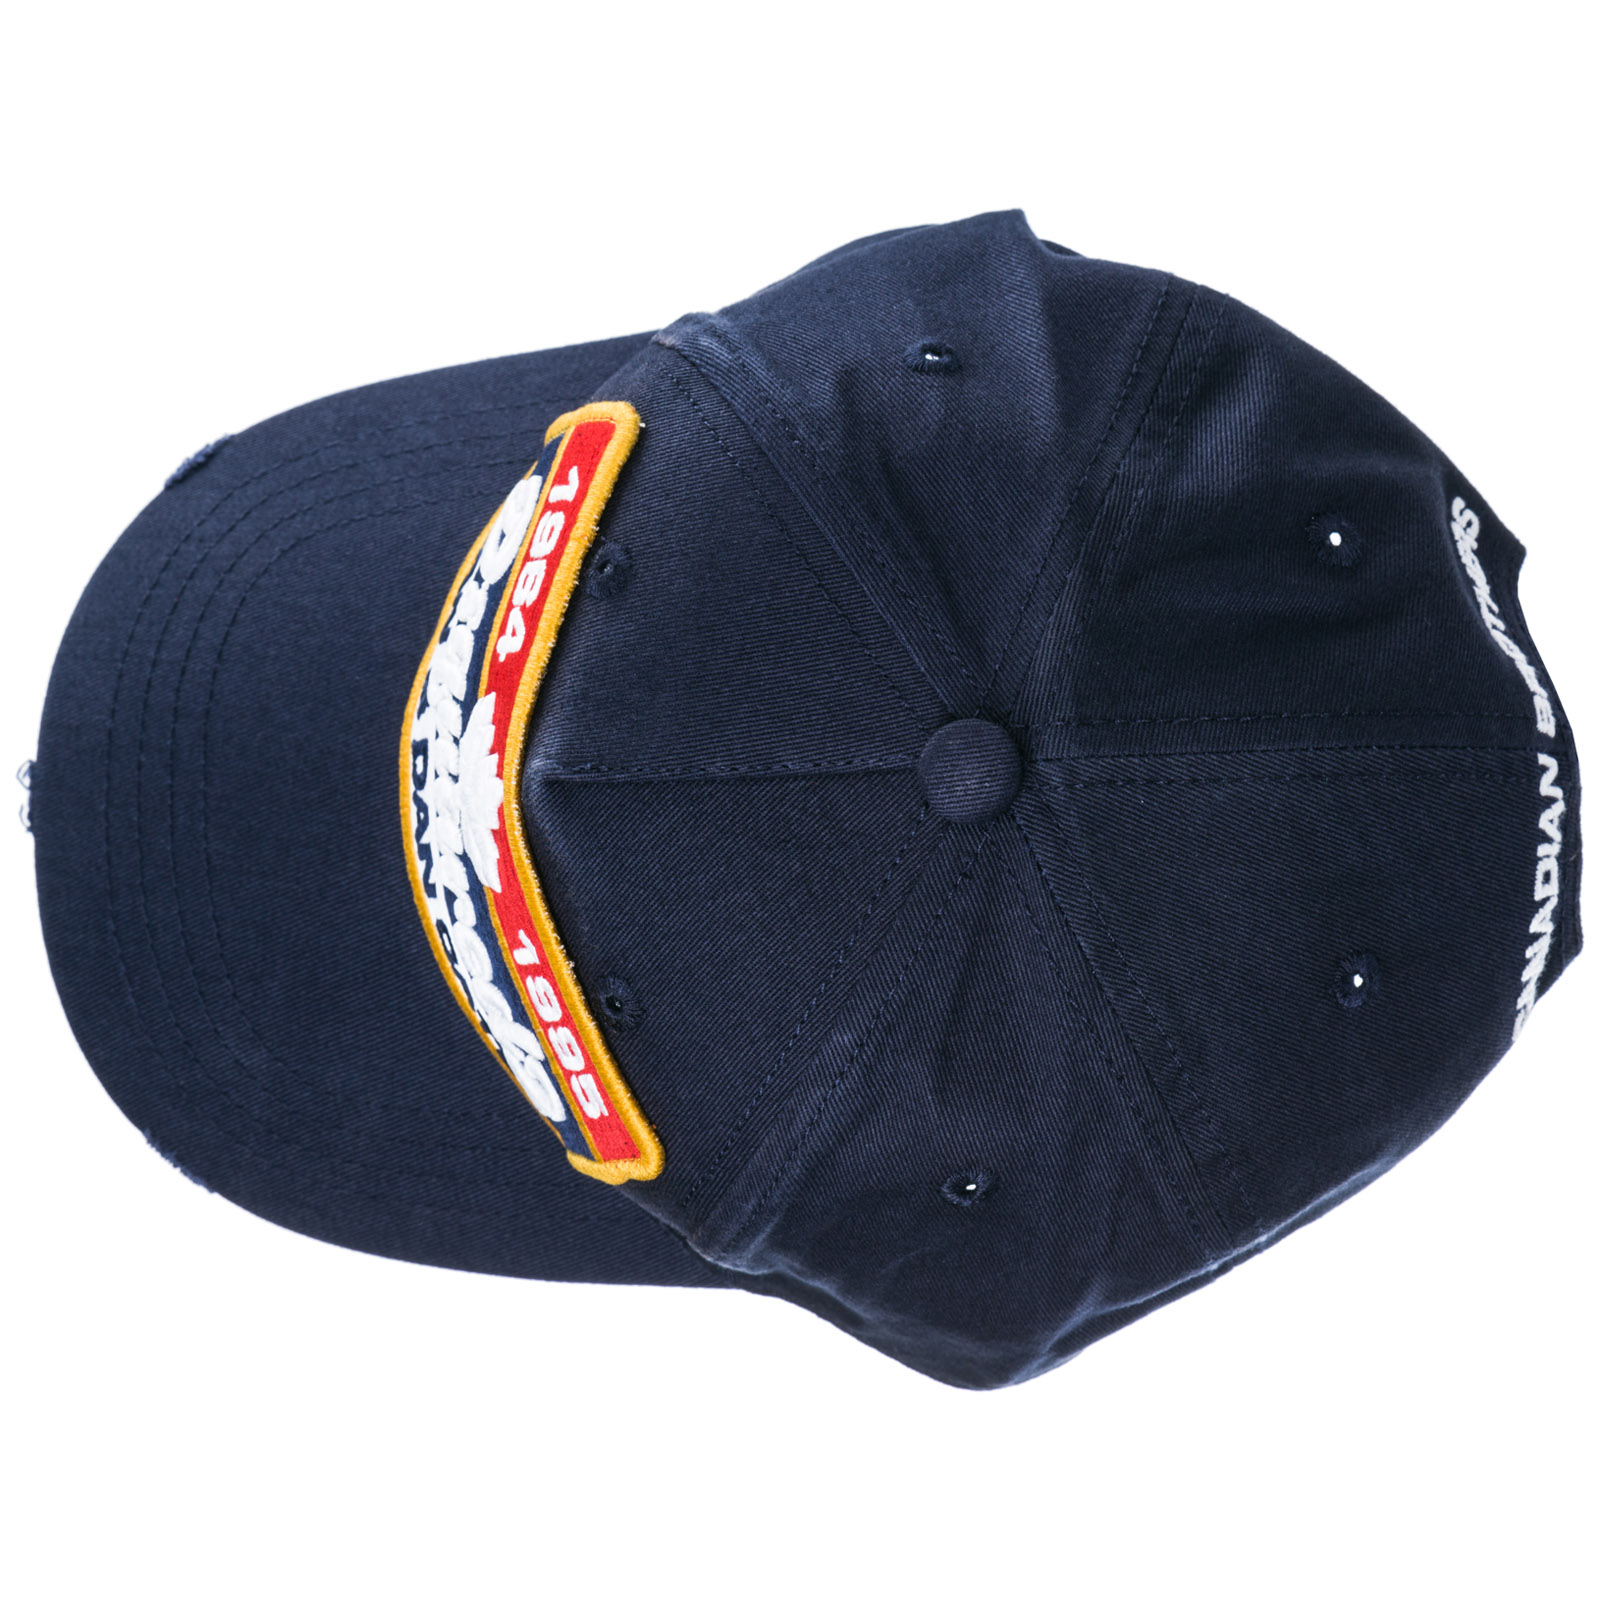 Adjustable men's cotton hat baseball cap  leaf